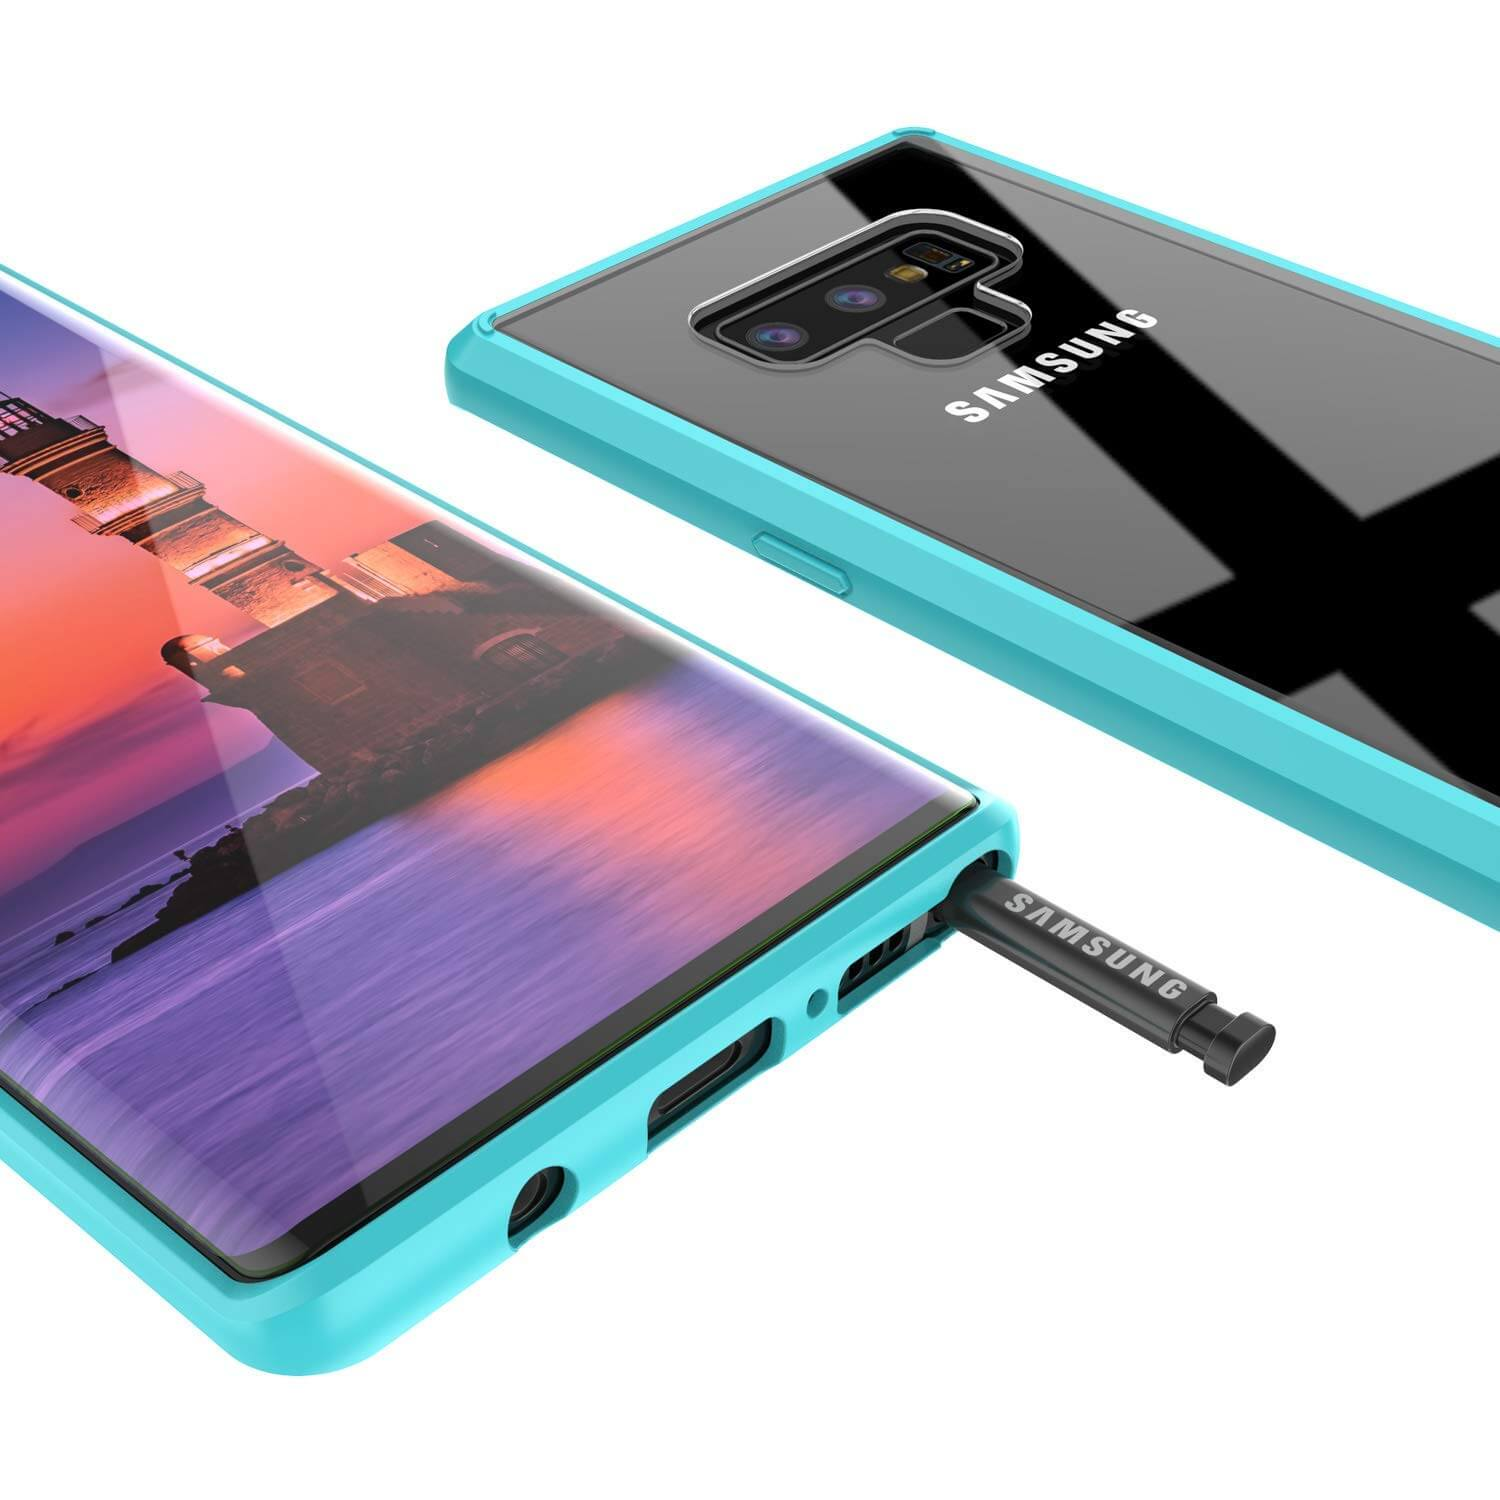 Galaxy Note 9 Punkcase Lucid-2.0 Series Slim Fit Armor Teal Case Cover